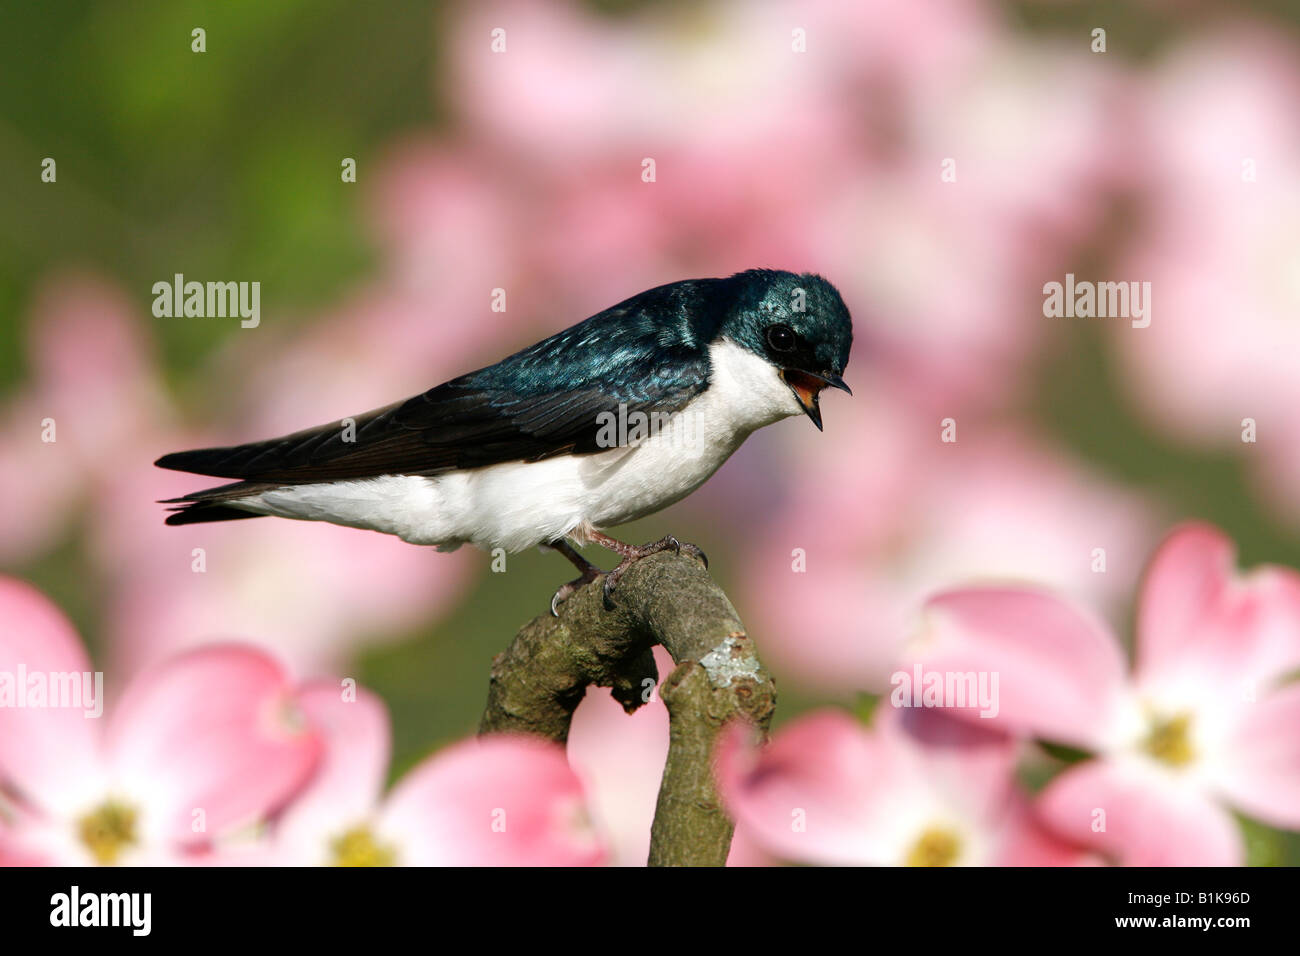 Tree Swallow Perched in Dogwood Blossoms - Stock Image